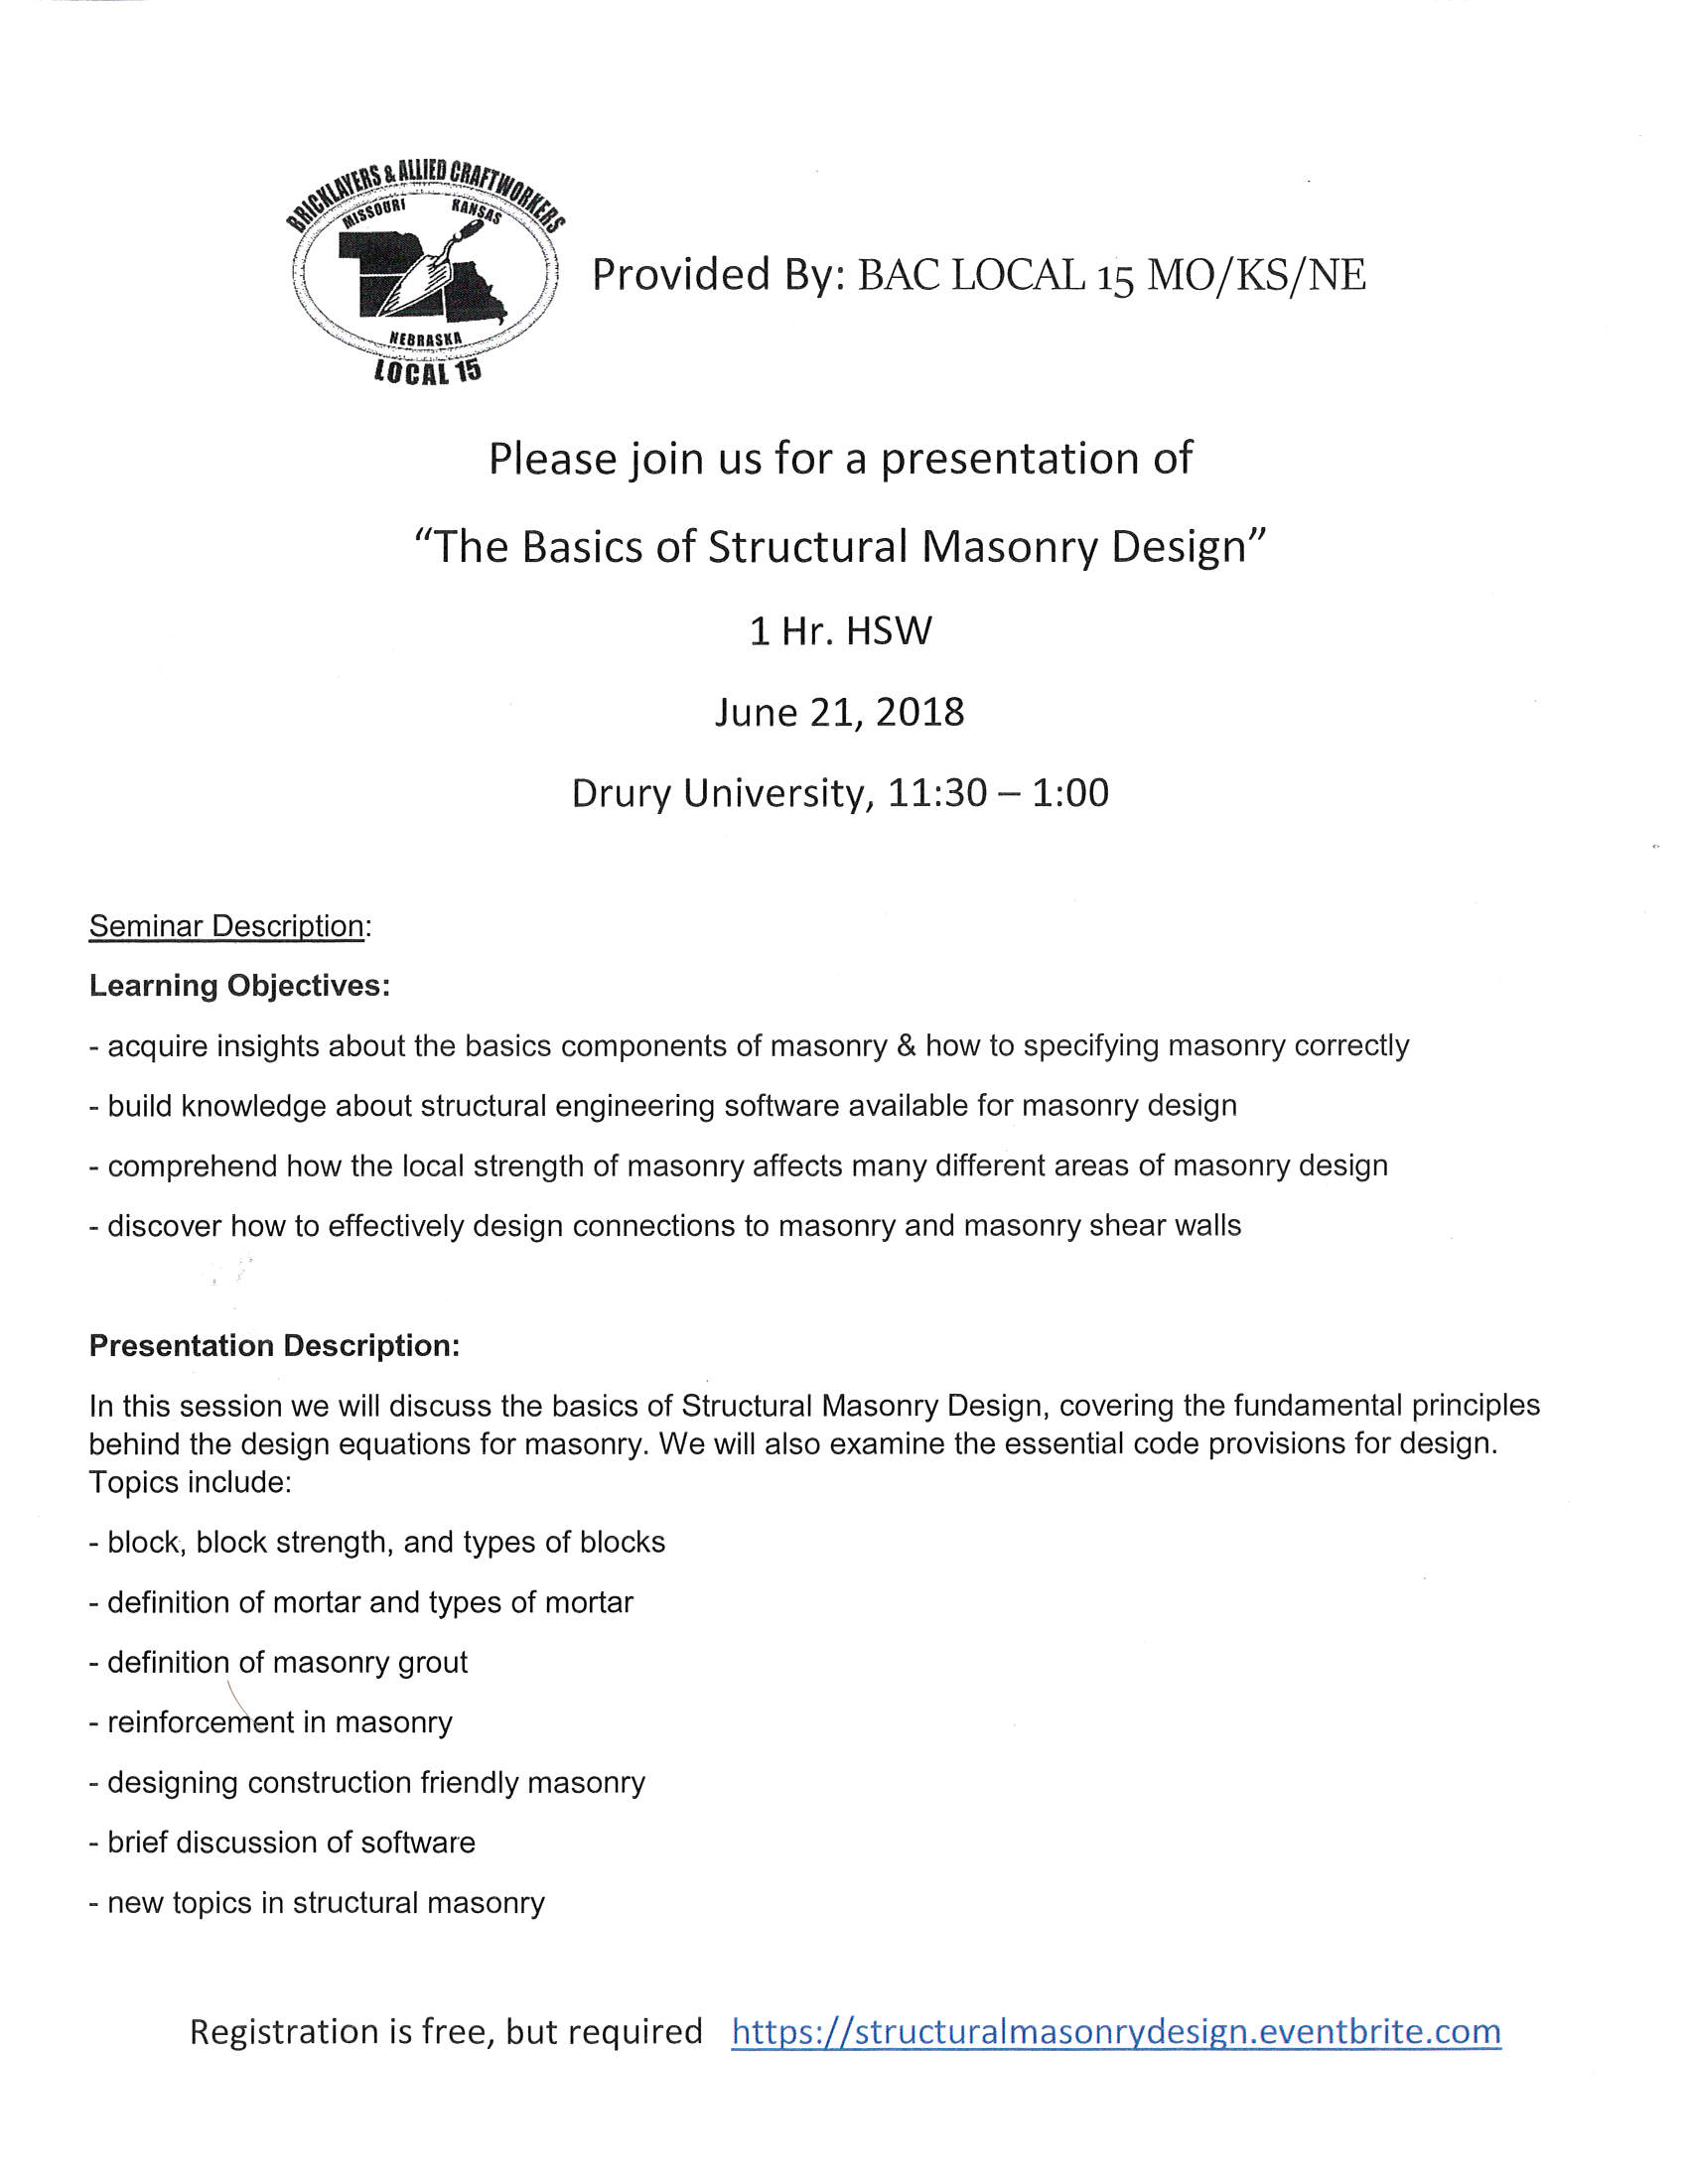 The Basics in Structural Masonry Design flyer